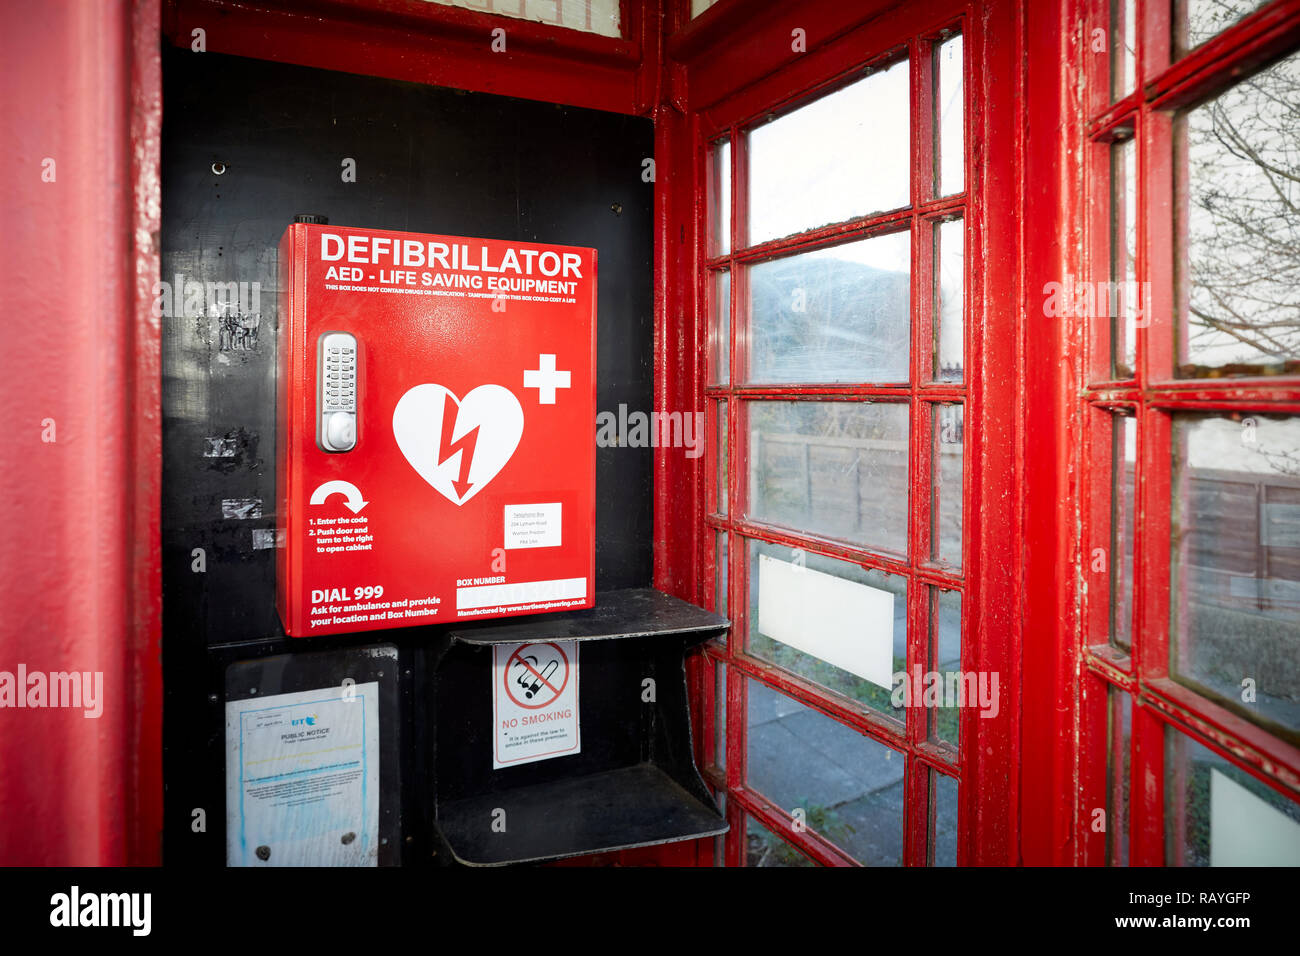 Emergency defibrillation automated external defibrillator (AED) located in an old red telephone box in a Lancashire Village Stock Photo